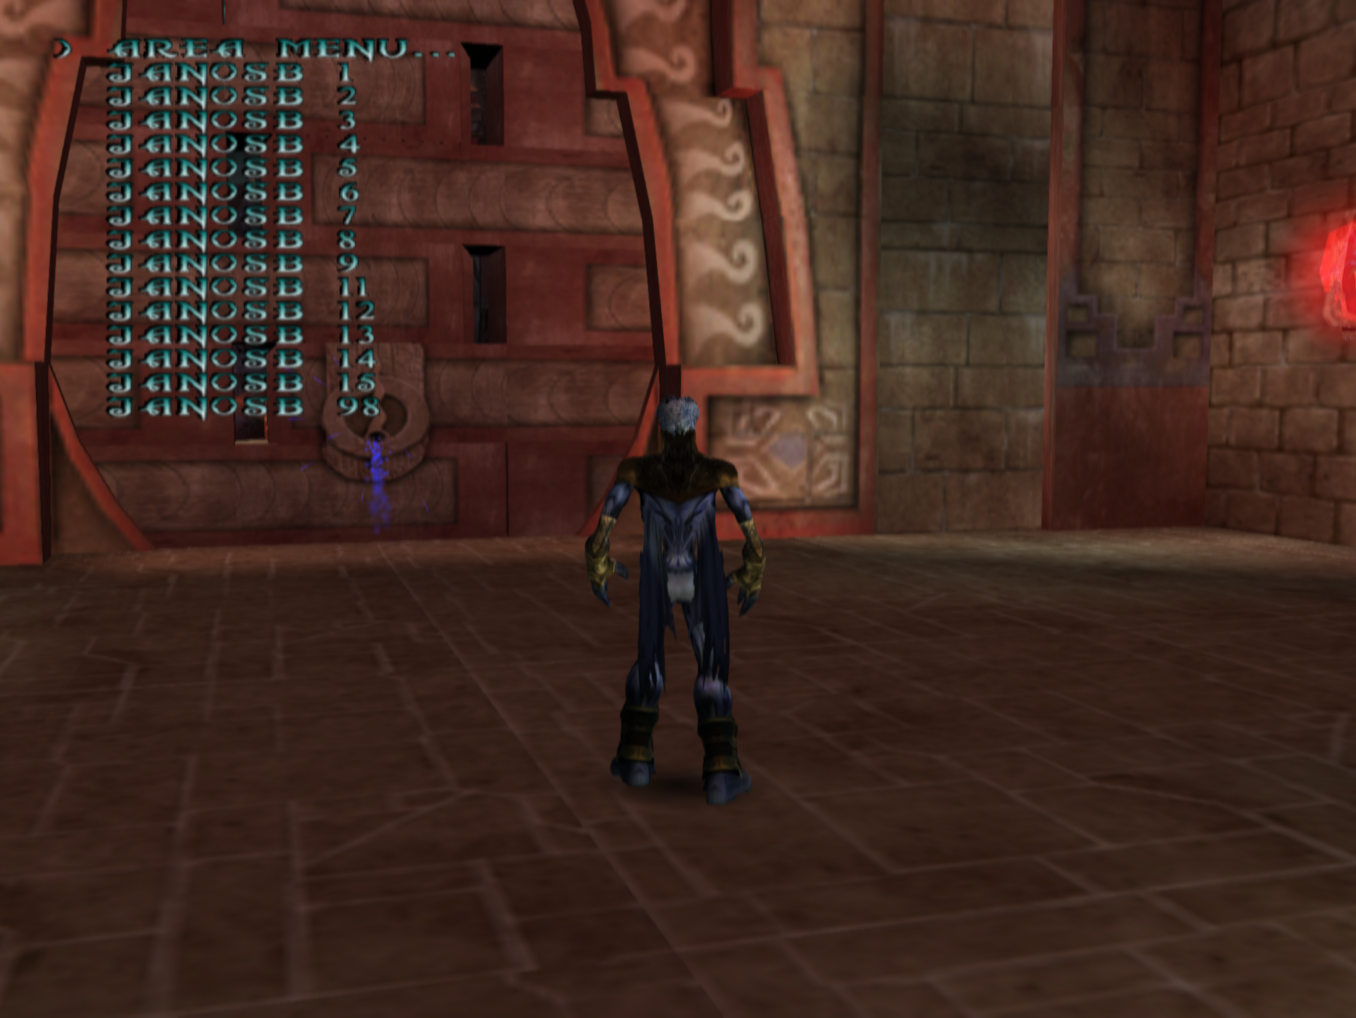 SR2-AirForgeDemo-Level-JanosB.png